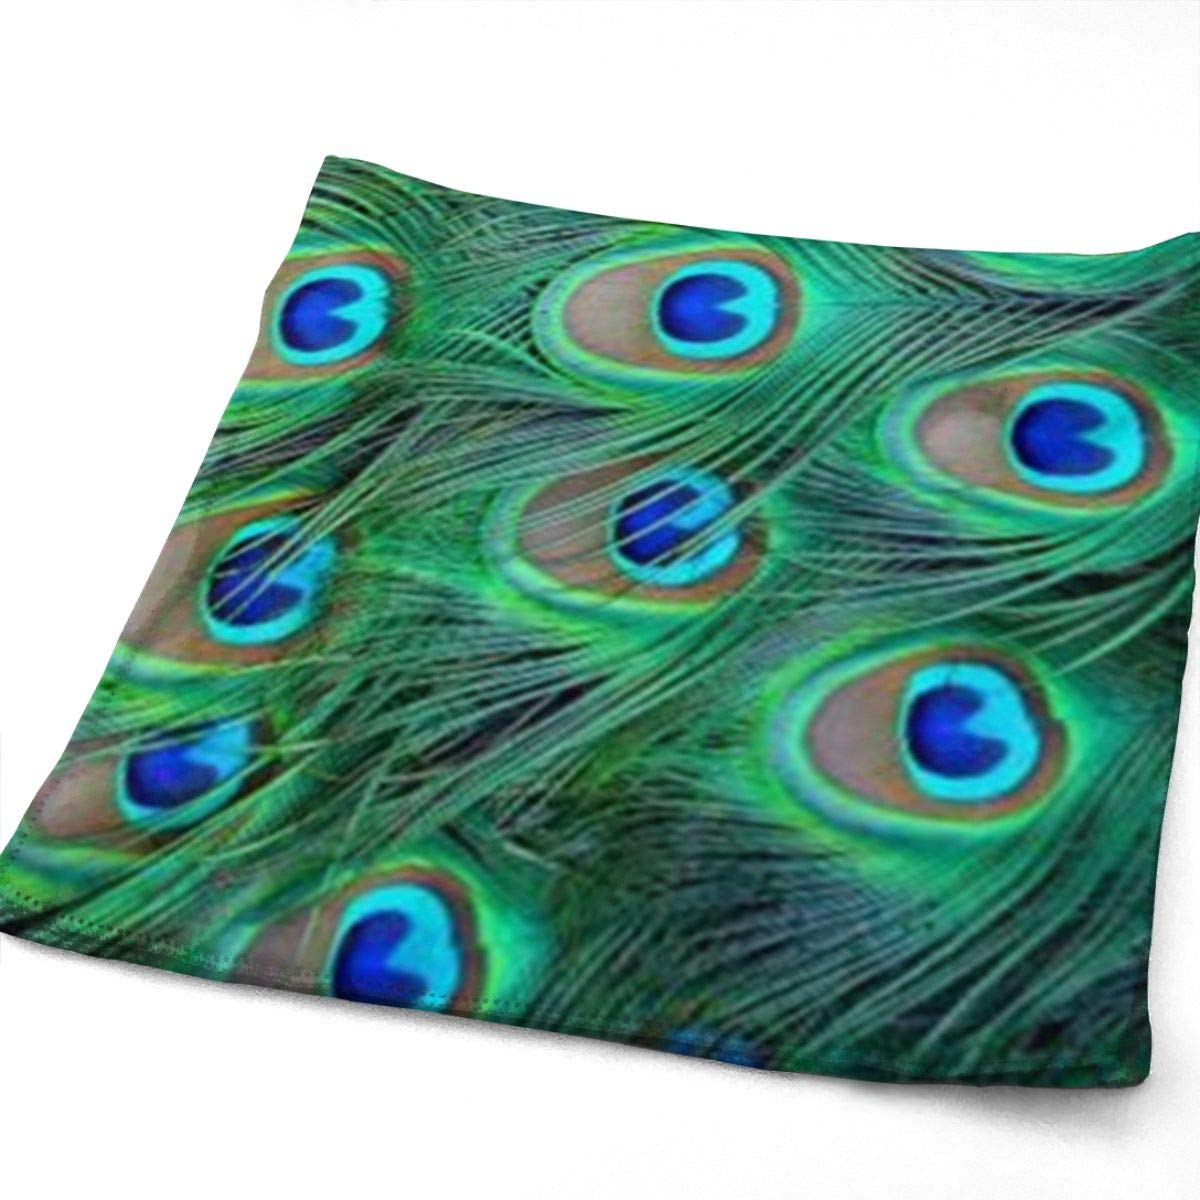 Maching916 Adorable Green Peacock Kitchen Towels-Dish Cloth-Machine Washable Cotton Kitchen Dishcloths,Dish Towel & Tea Towels for Drying,Cleaning,Cooking,Baking 12x27.5 Inch Kitchen & Table Linens